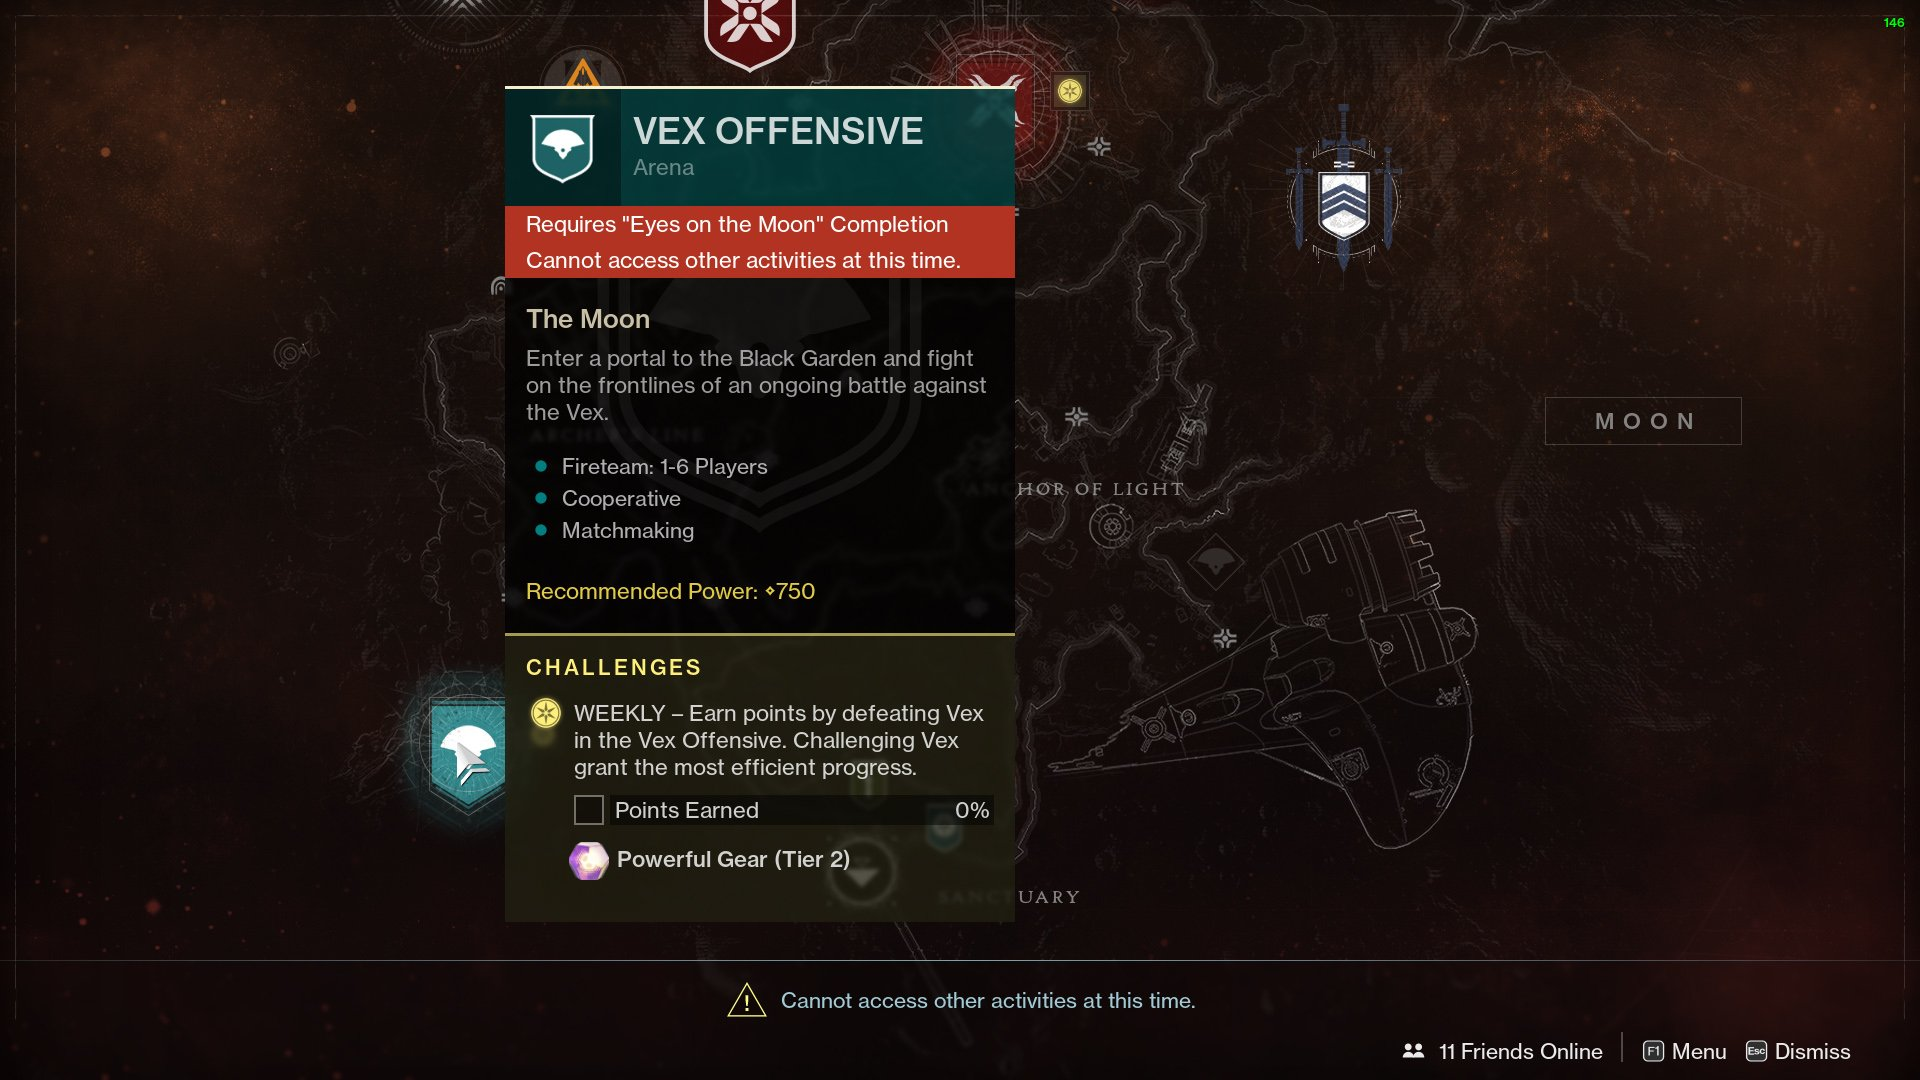 Destiny 2 requires Eyes on the Moon